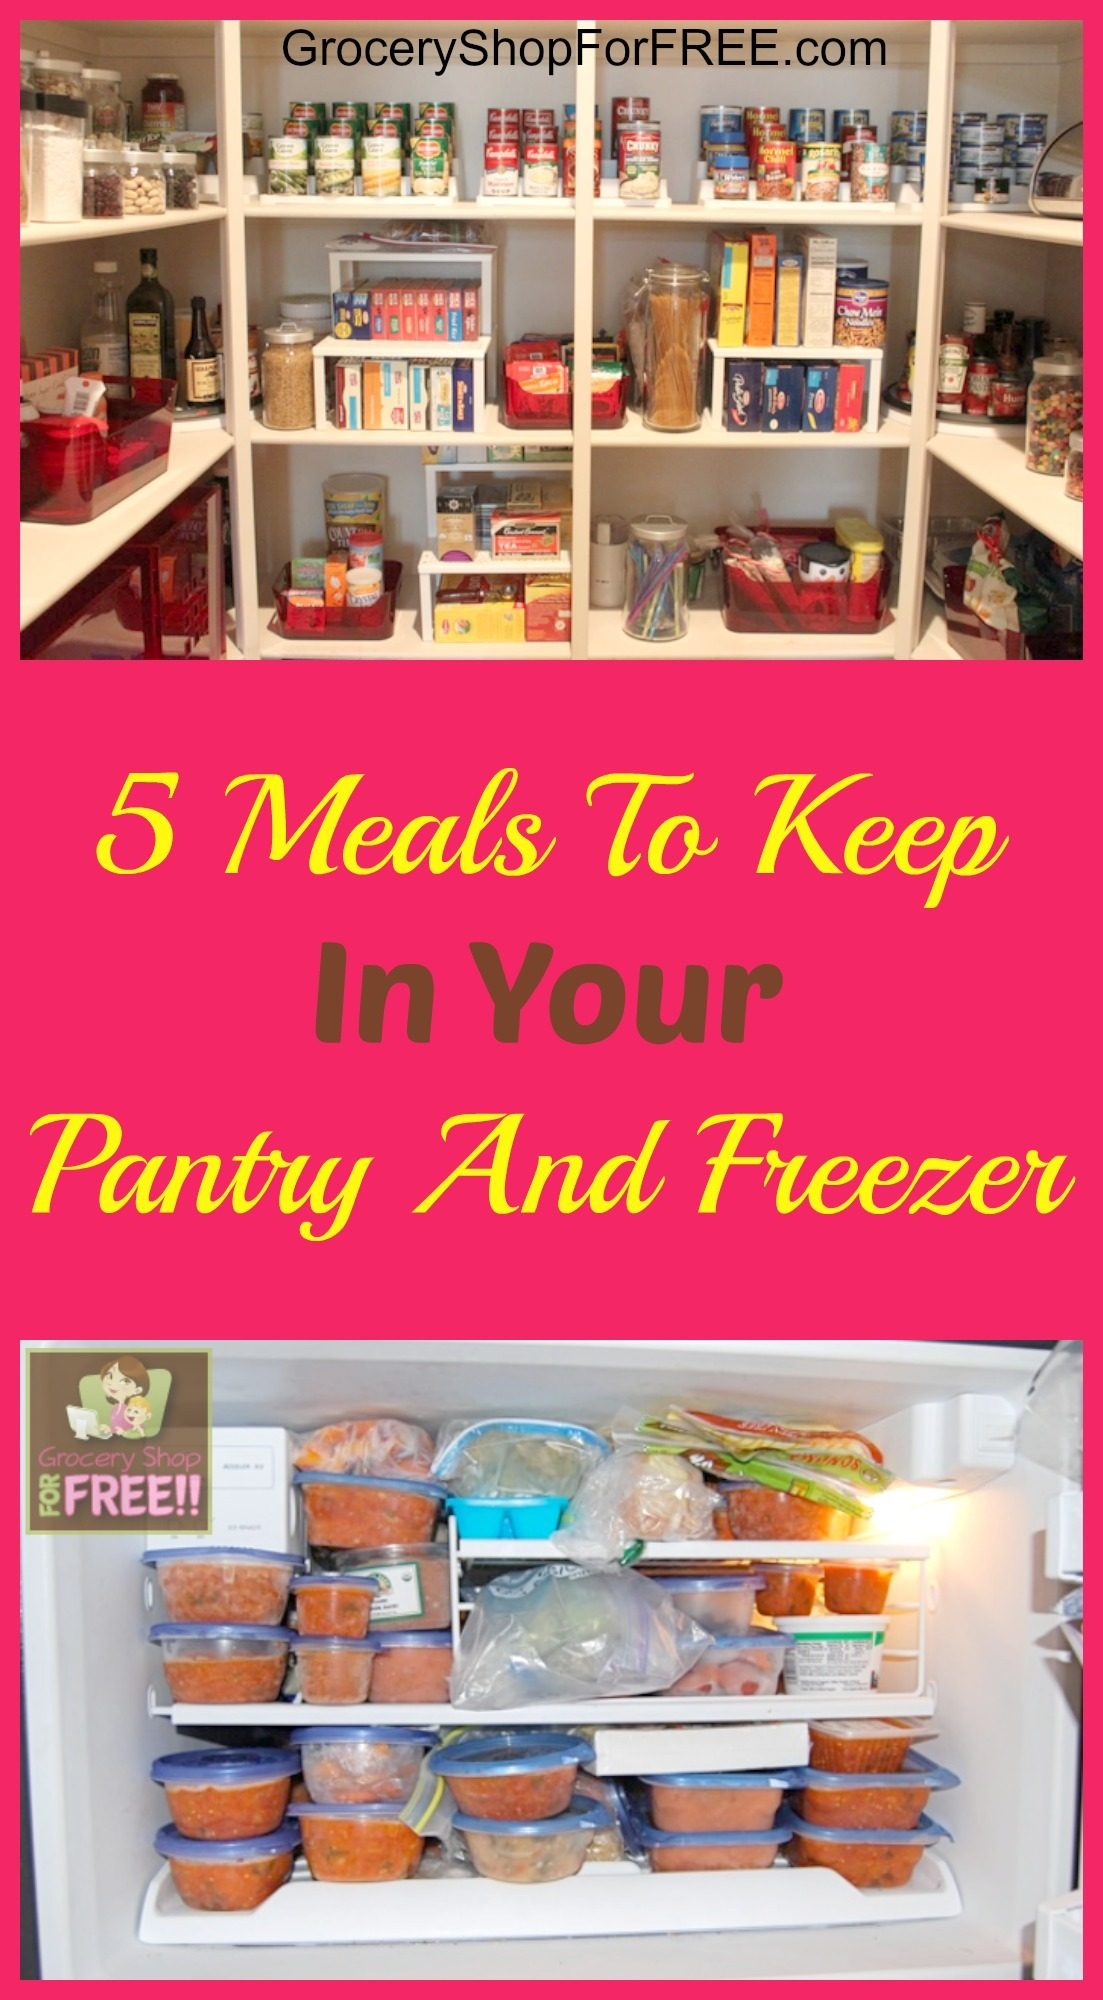 Do you ever have those weeks when life just happens? Boy, we do! Even the best of menu plans can't possibly account for times when life throws a curve ball.  You can save yourself a lot of trouble when that happens with these 5 Meals To Keep In Your Pantry And Freezer.